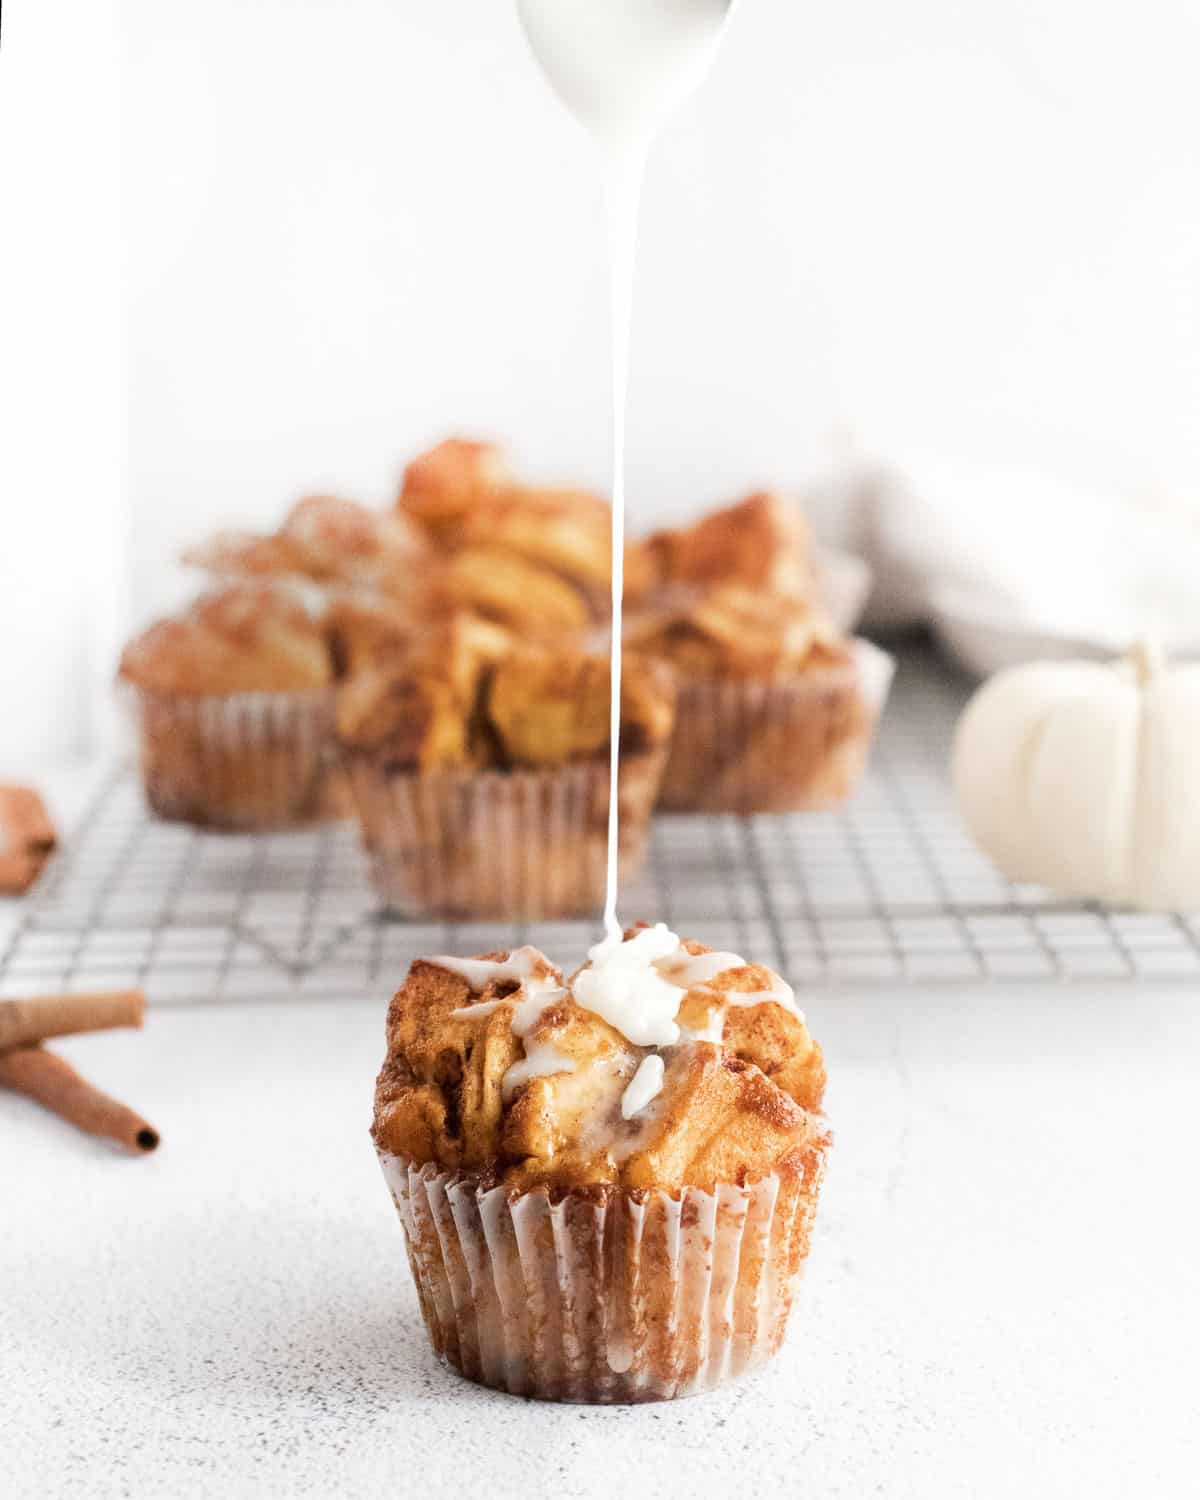 Pumpkin monkey bread muffin being drizzled with glaze.